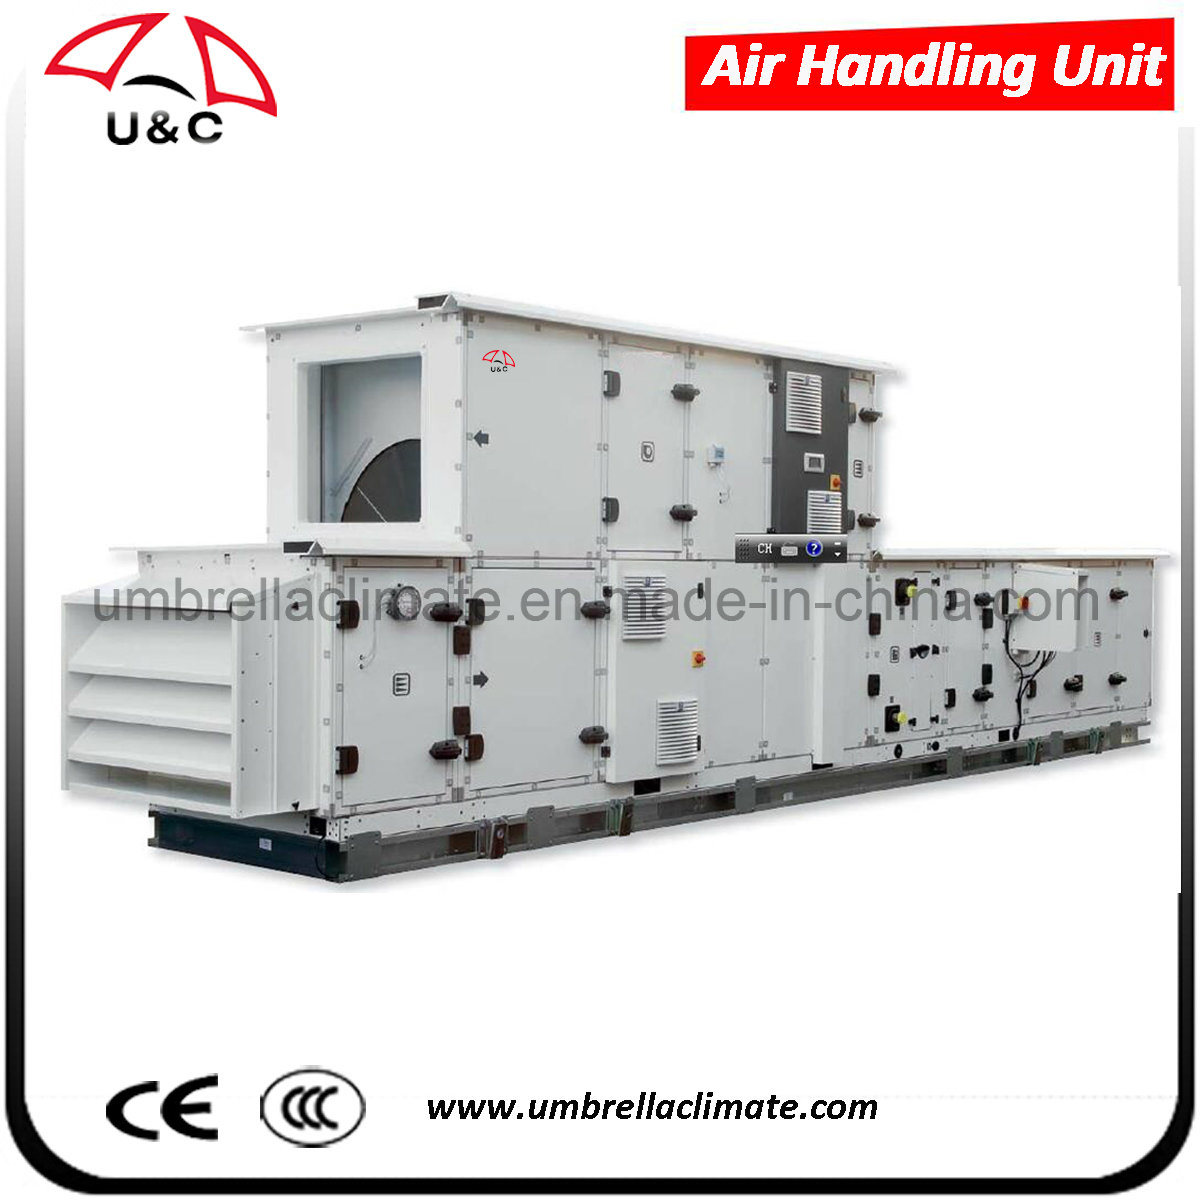 Tailor-Made Indoor Air Quality Modular Air Handling Unit